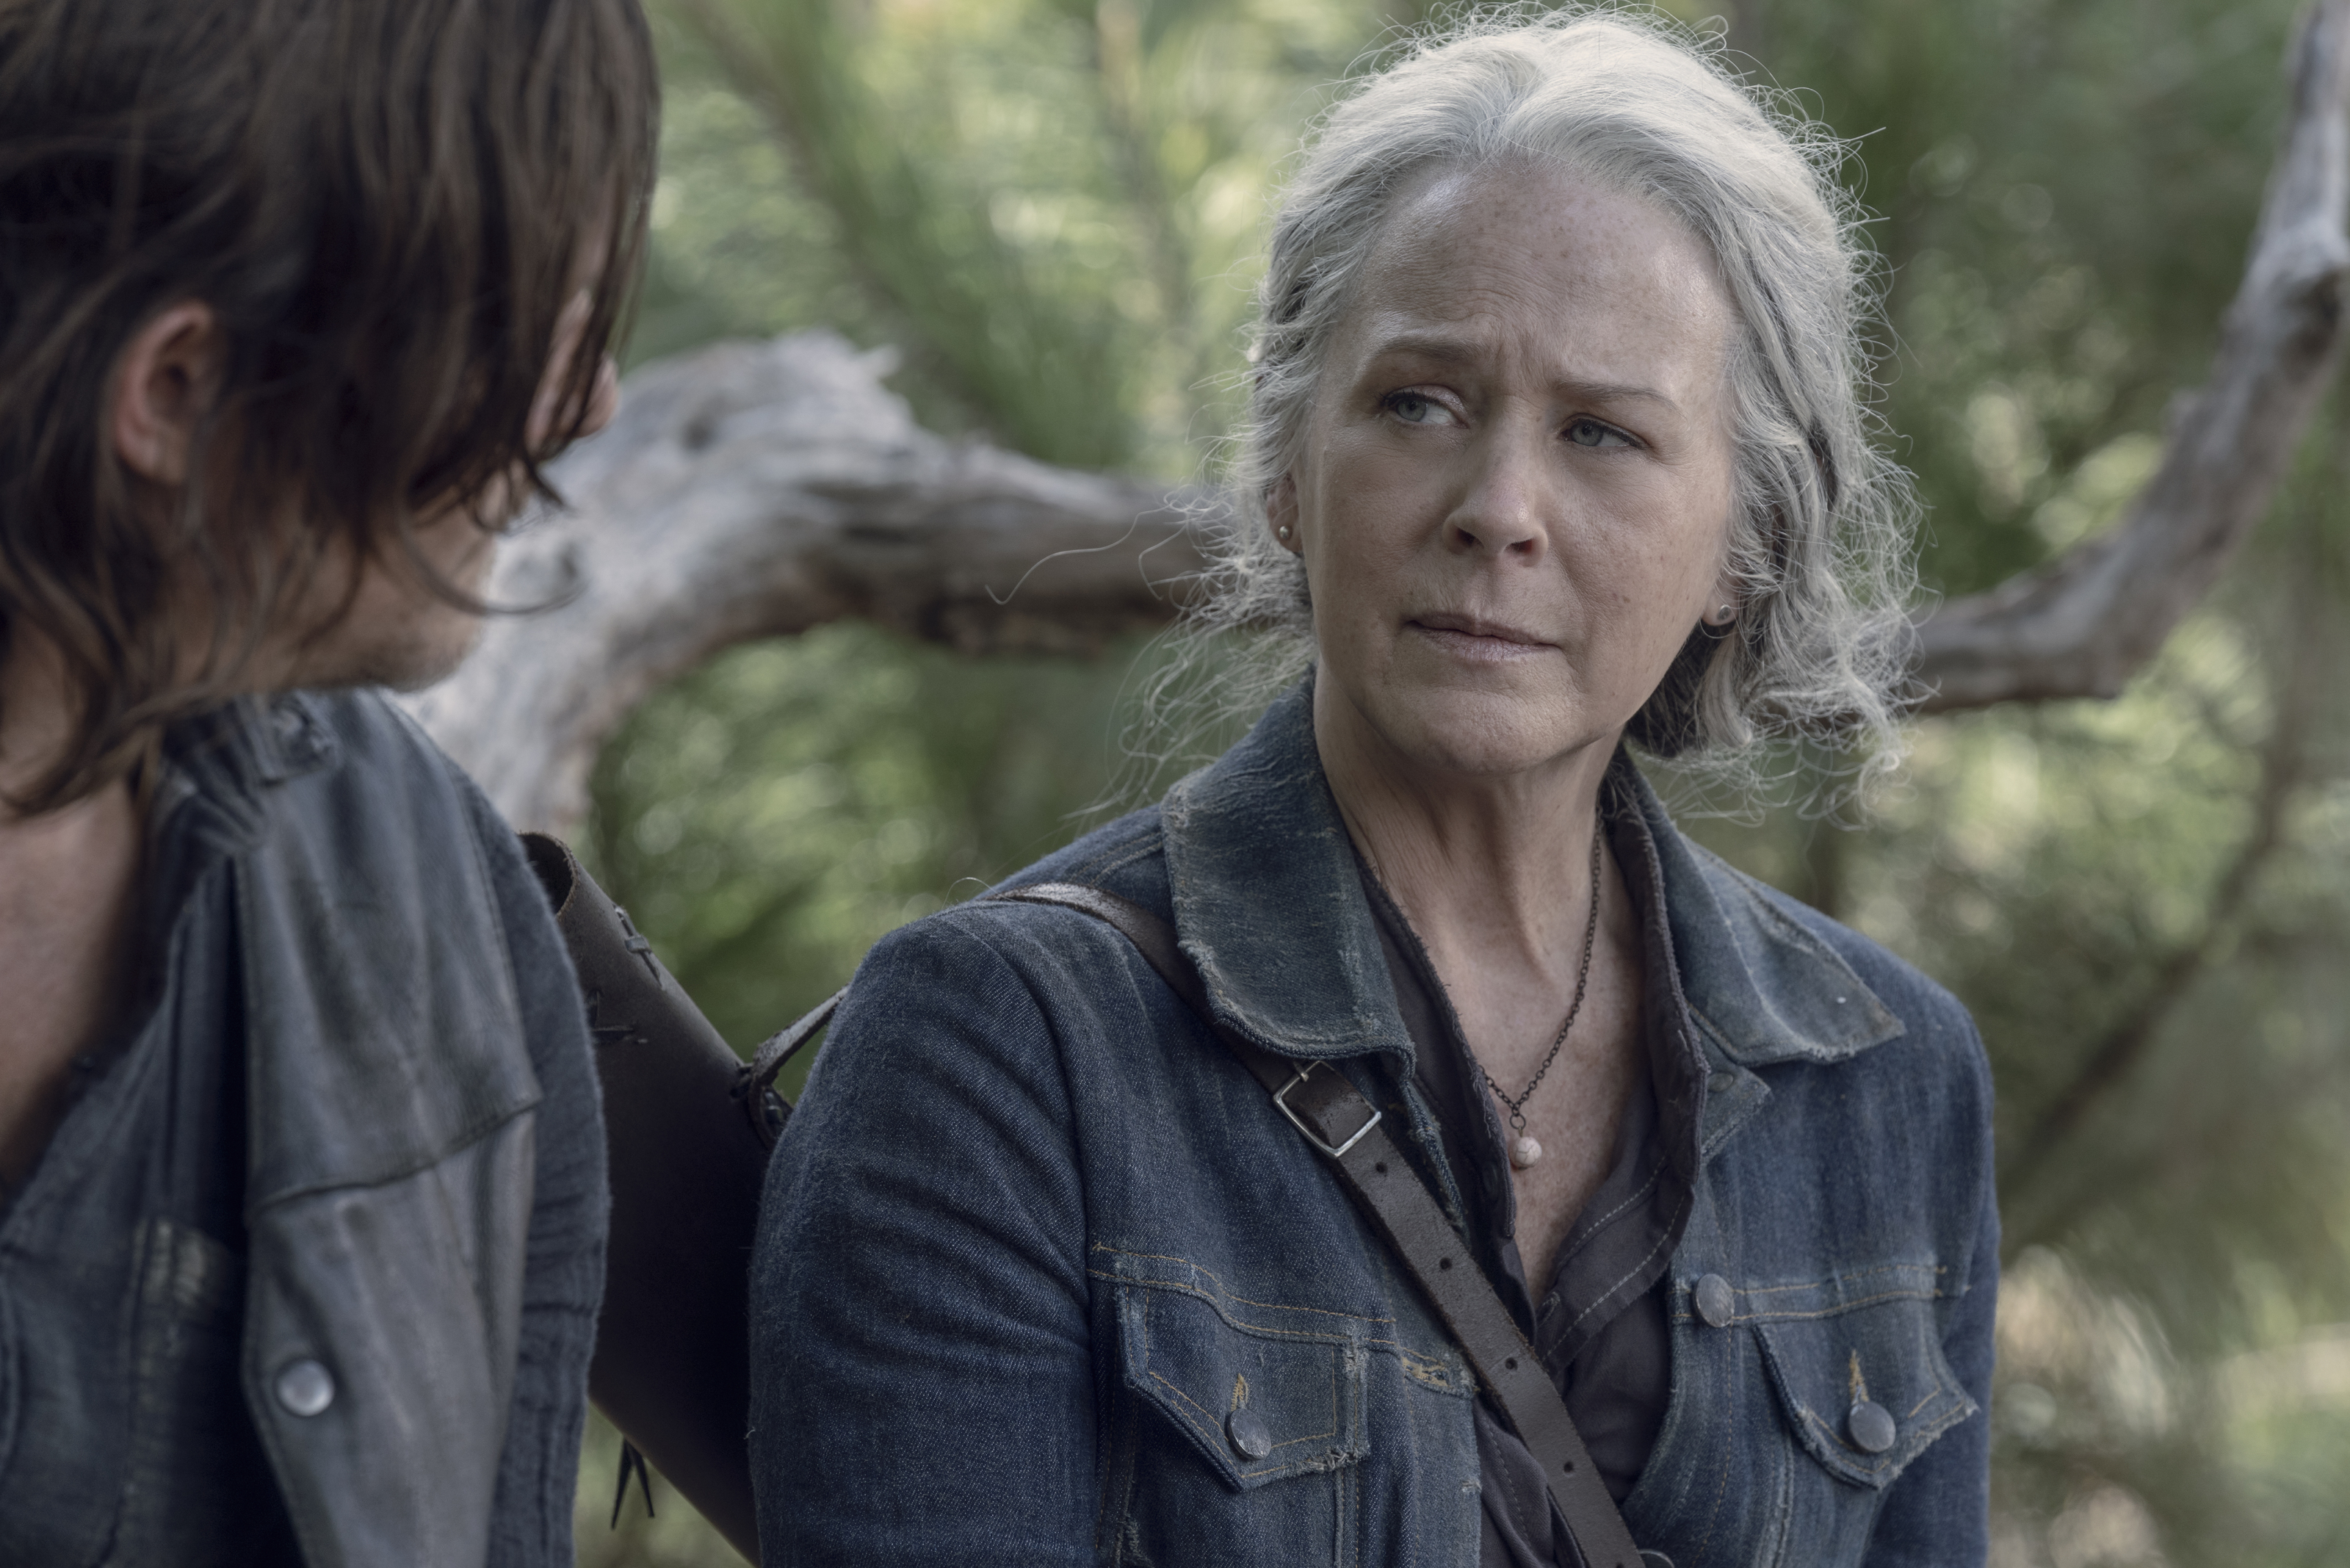 Does 'Squeeze' symbolize Carol's rock bottom on The Walking Dead?